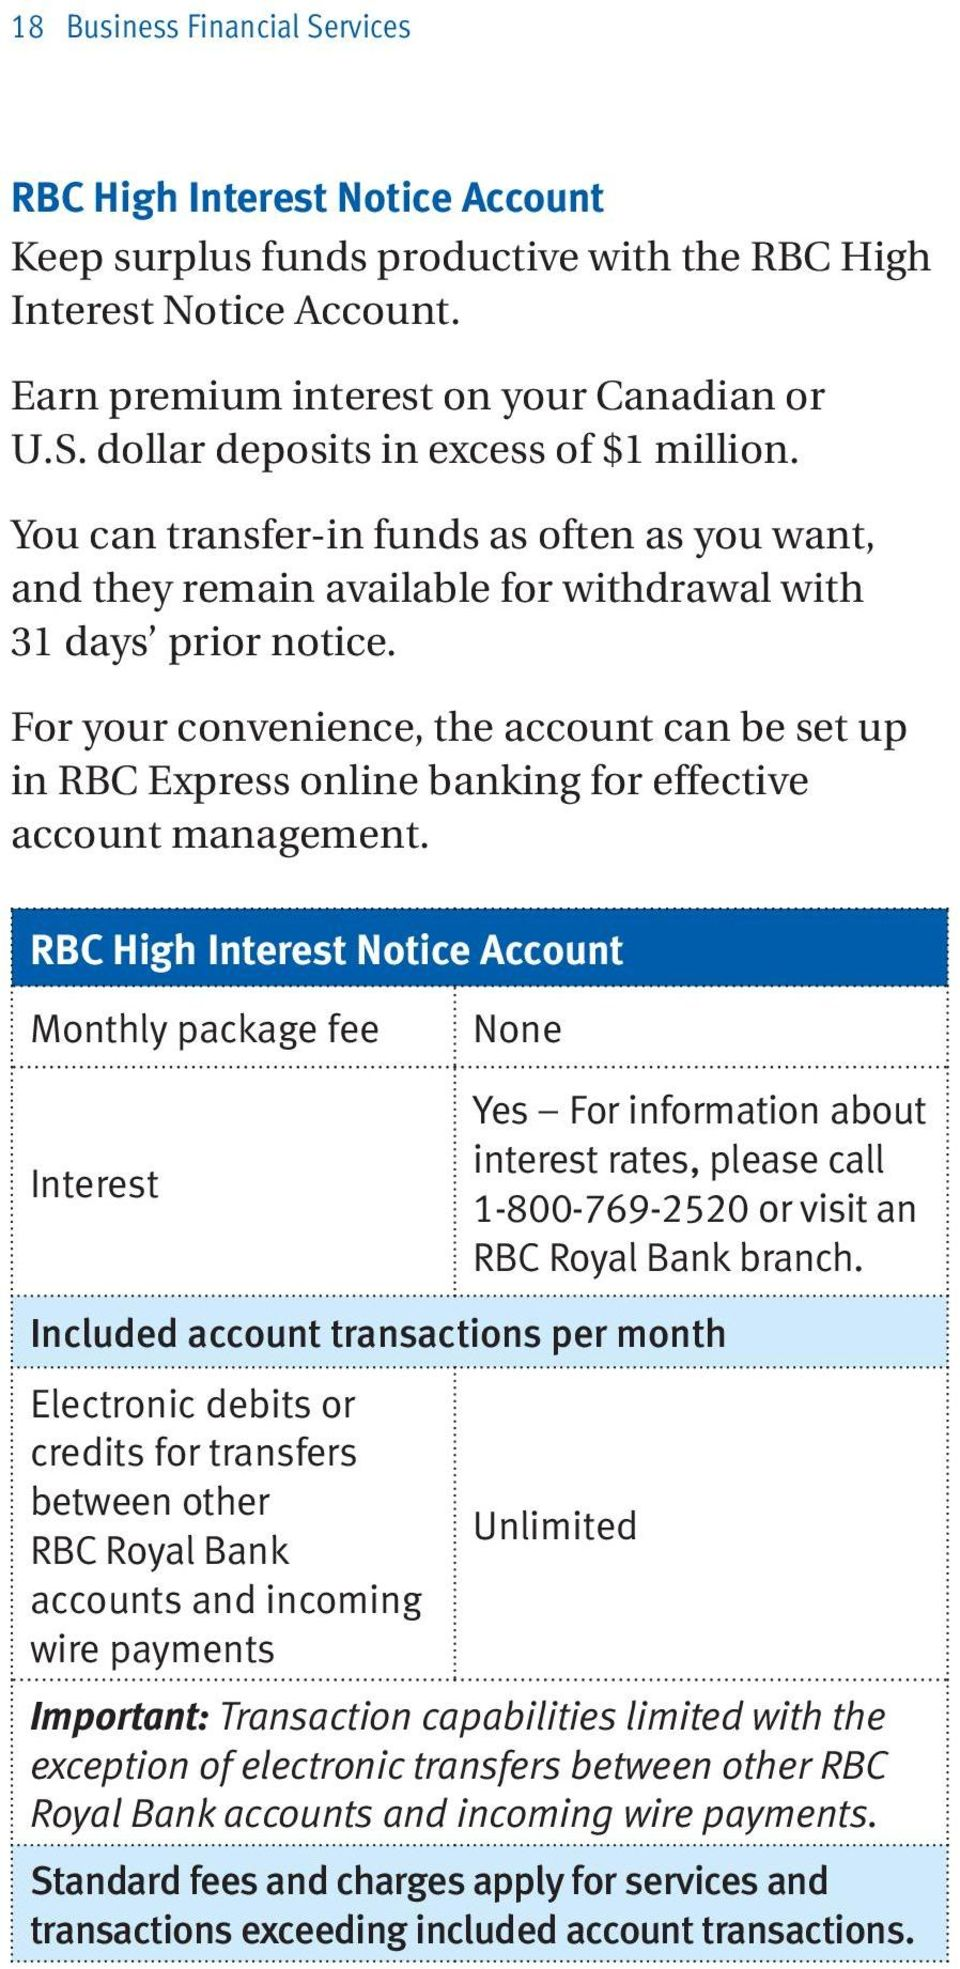 For your convenience, the account can be set up in RBC Express online banking for effective account management.